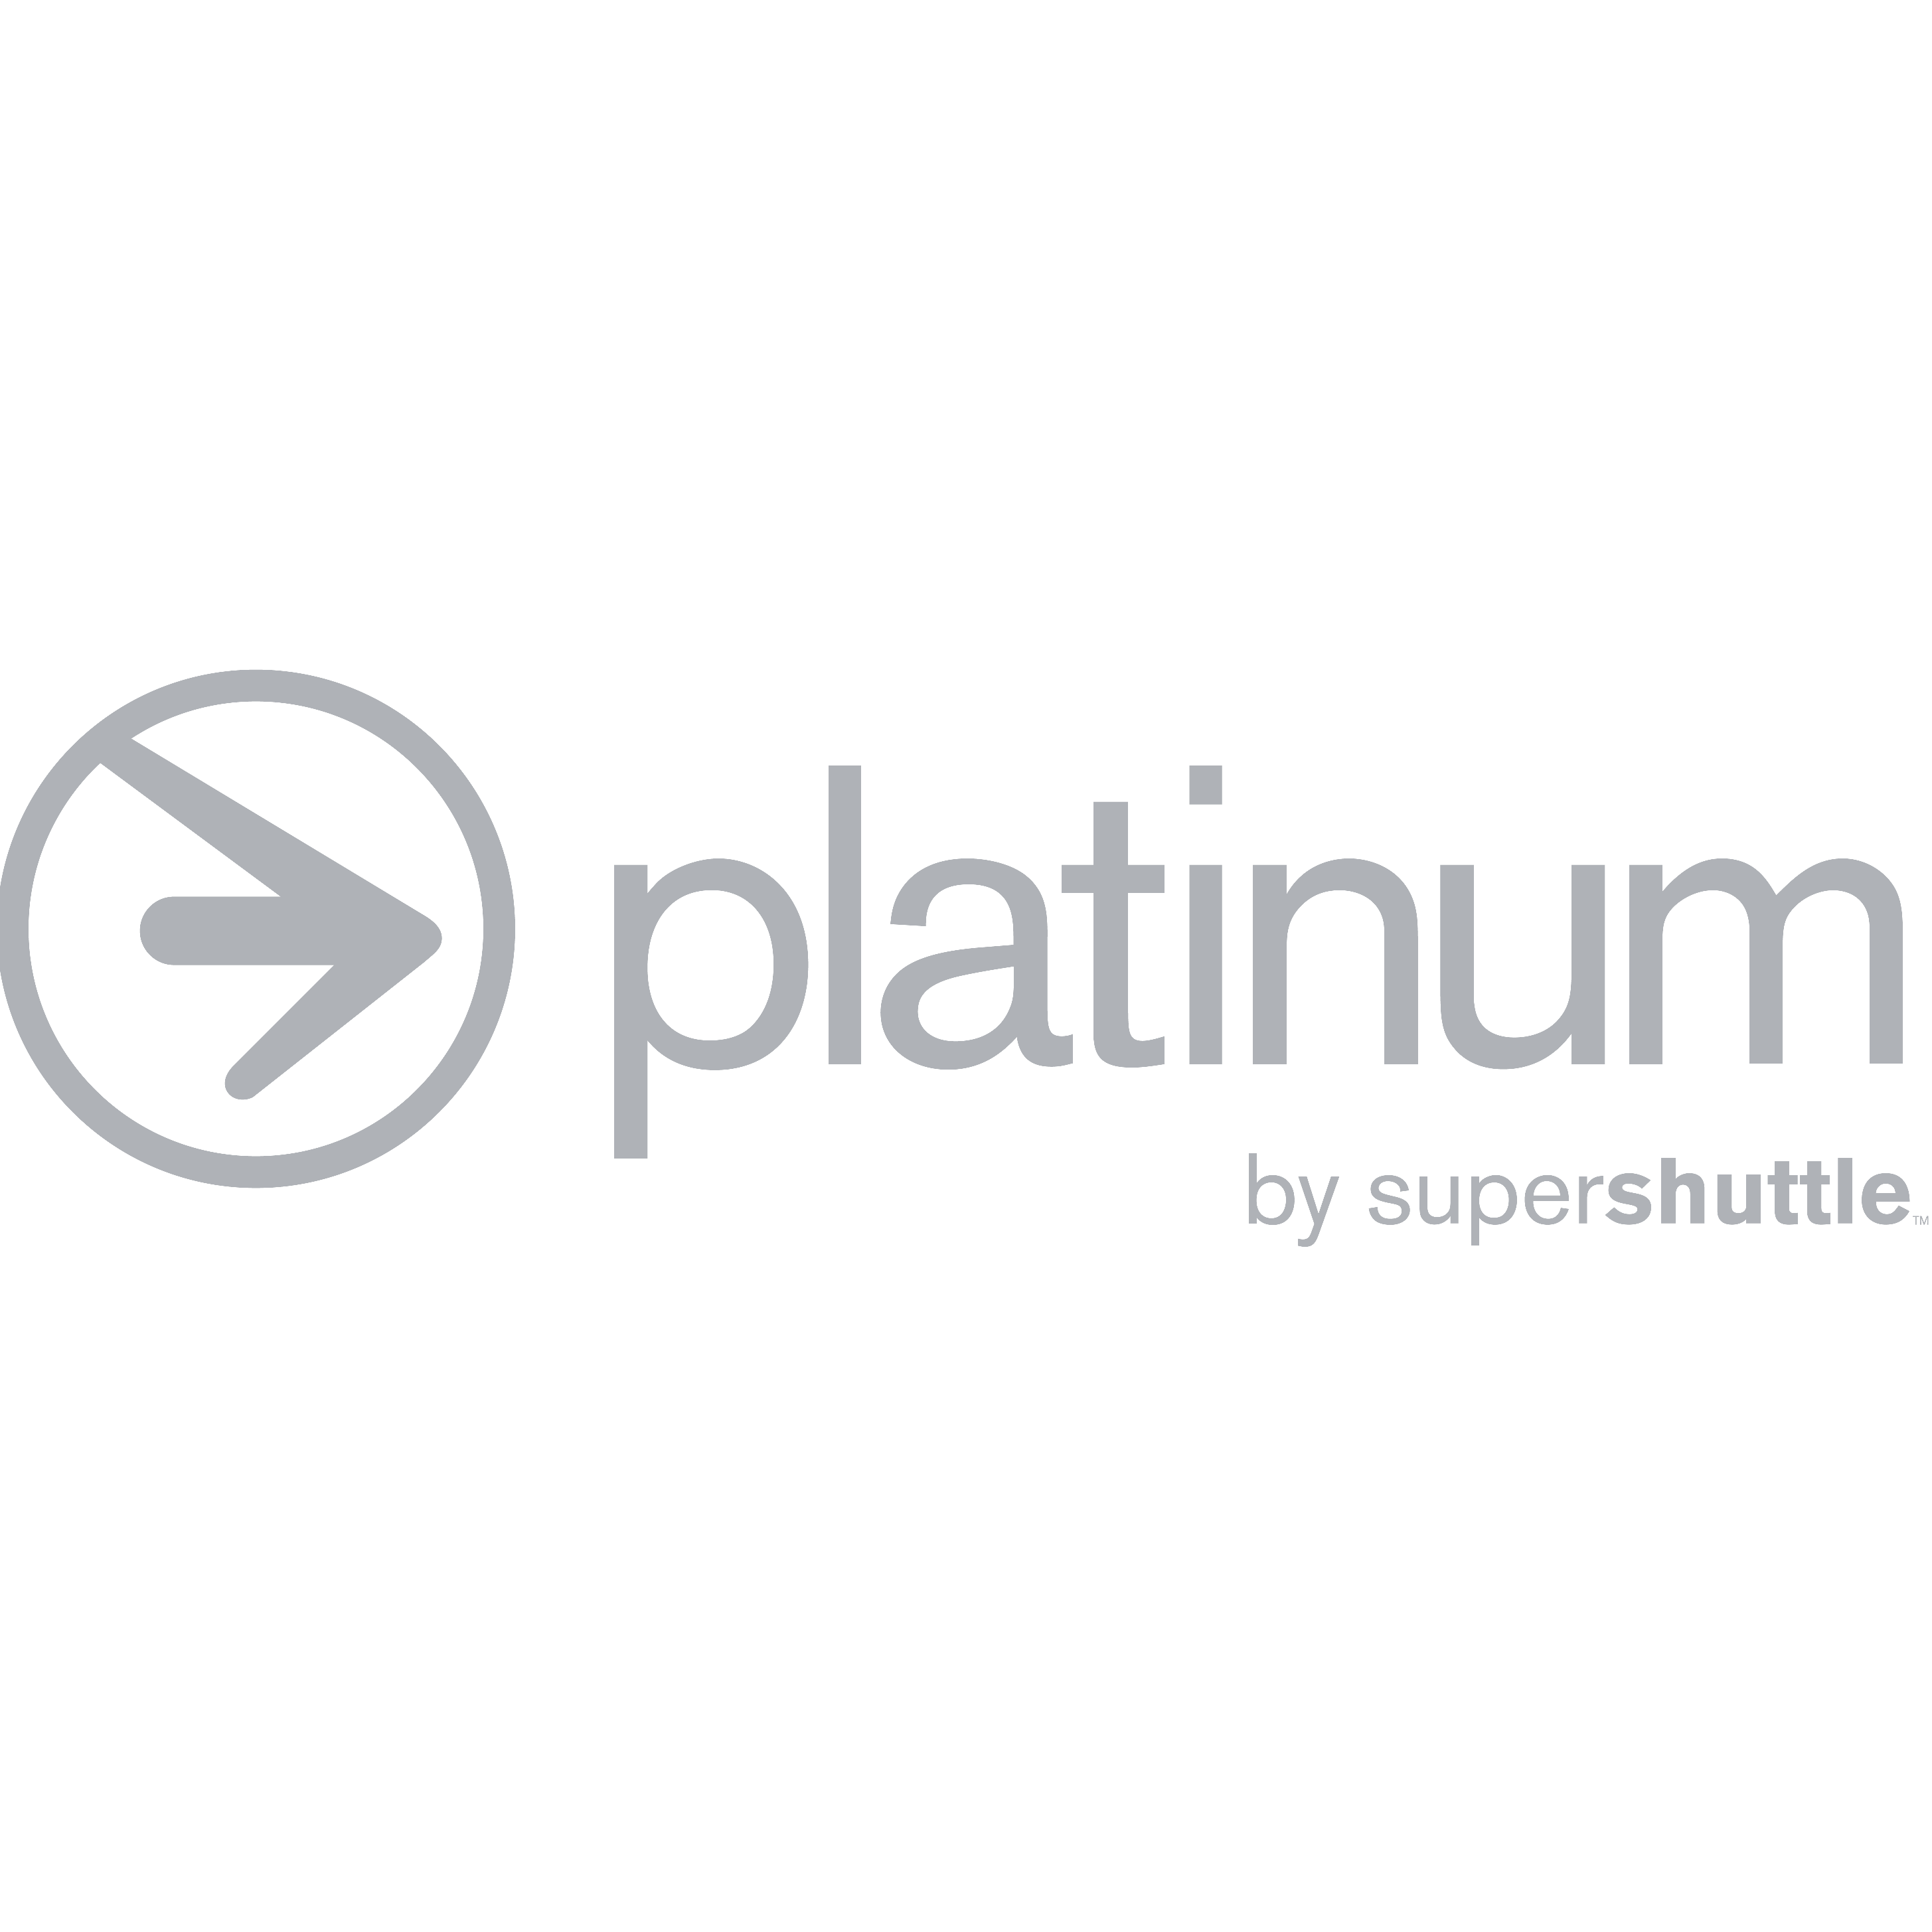 Platinum by Super Shuttle logo